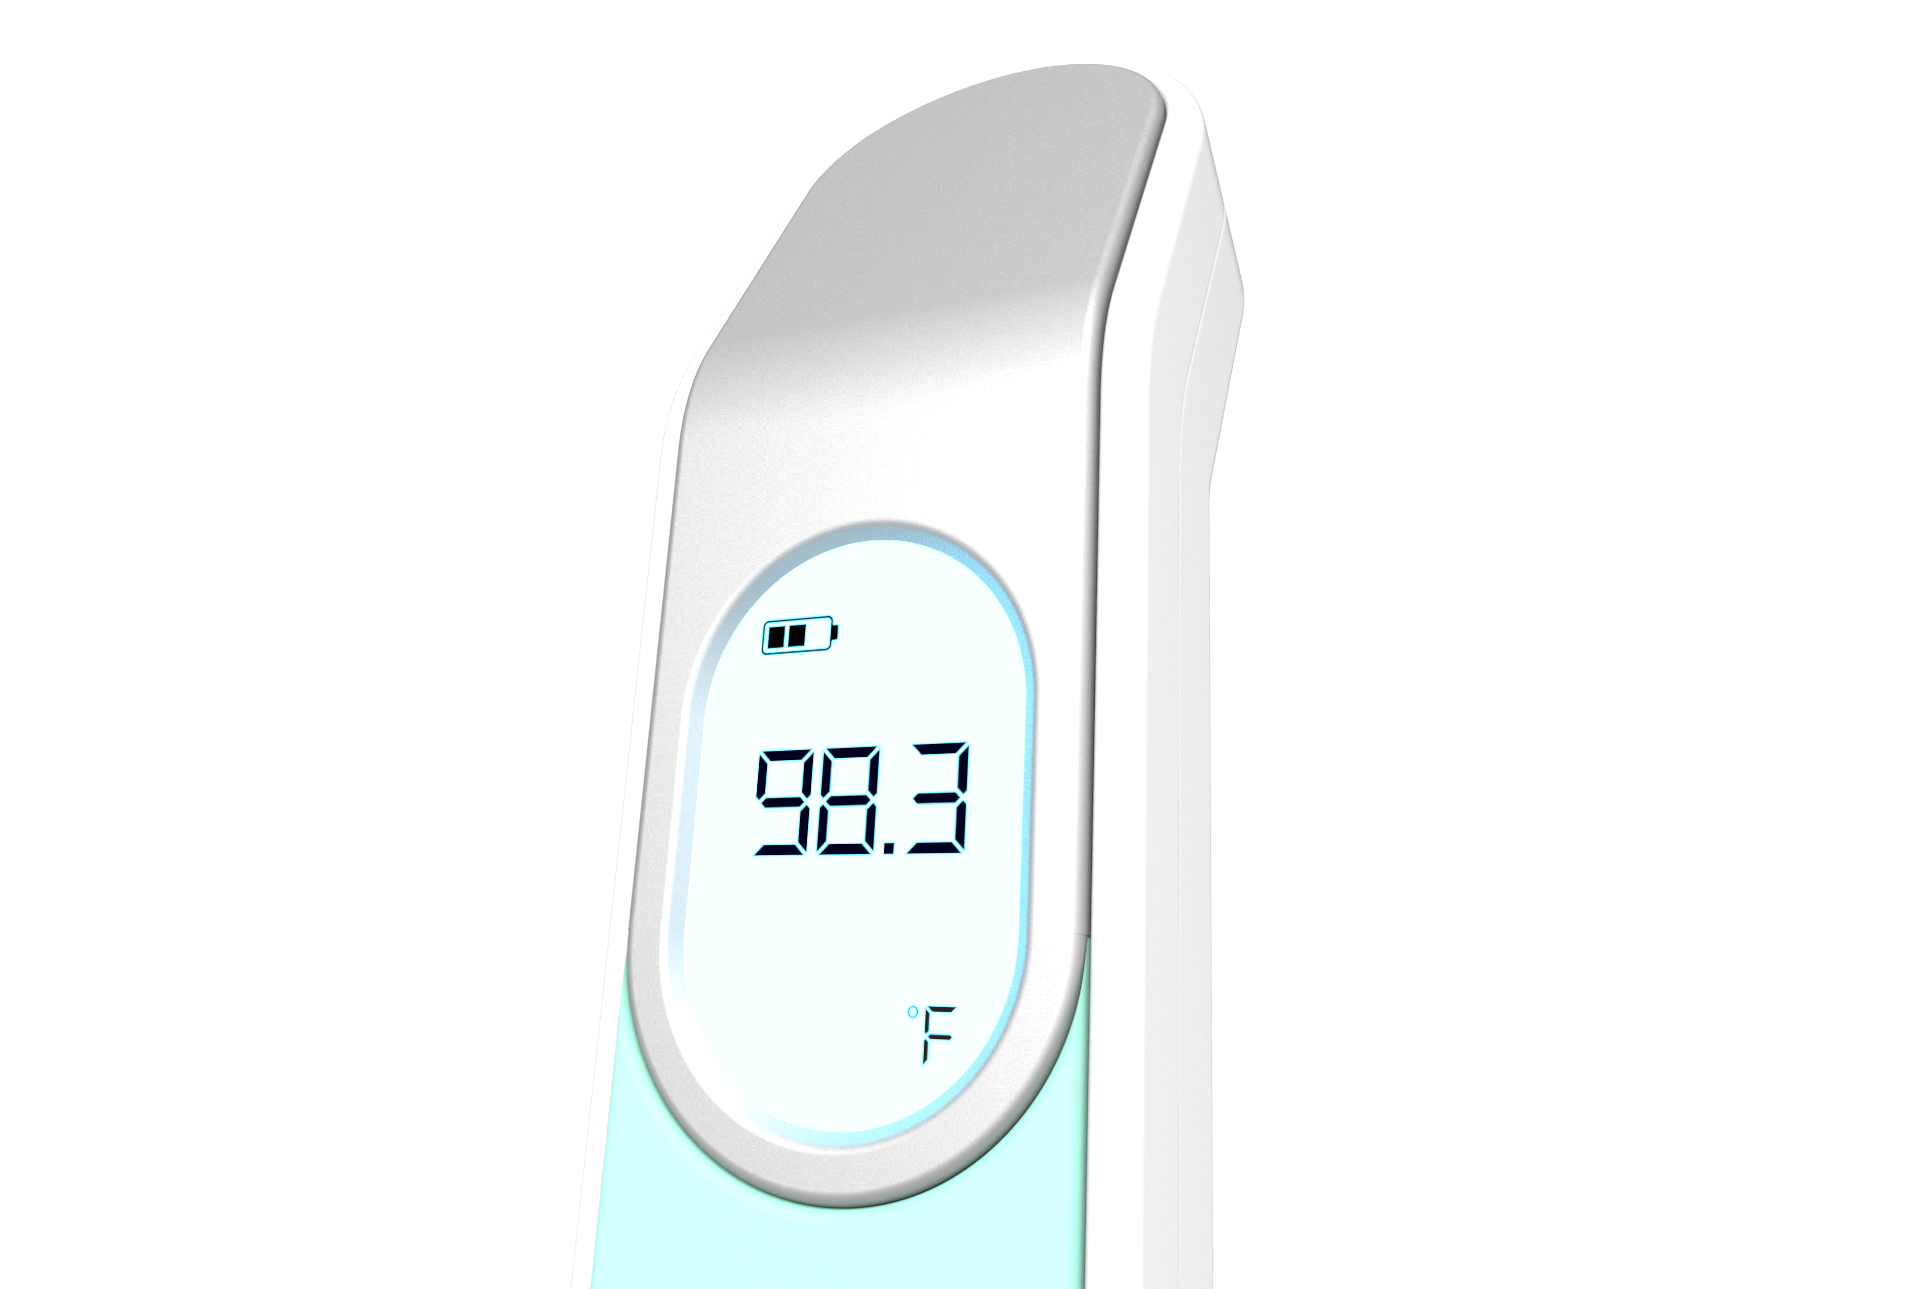 Child Thermometer Scene (1).3311 (1).png